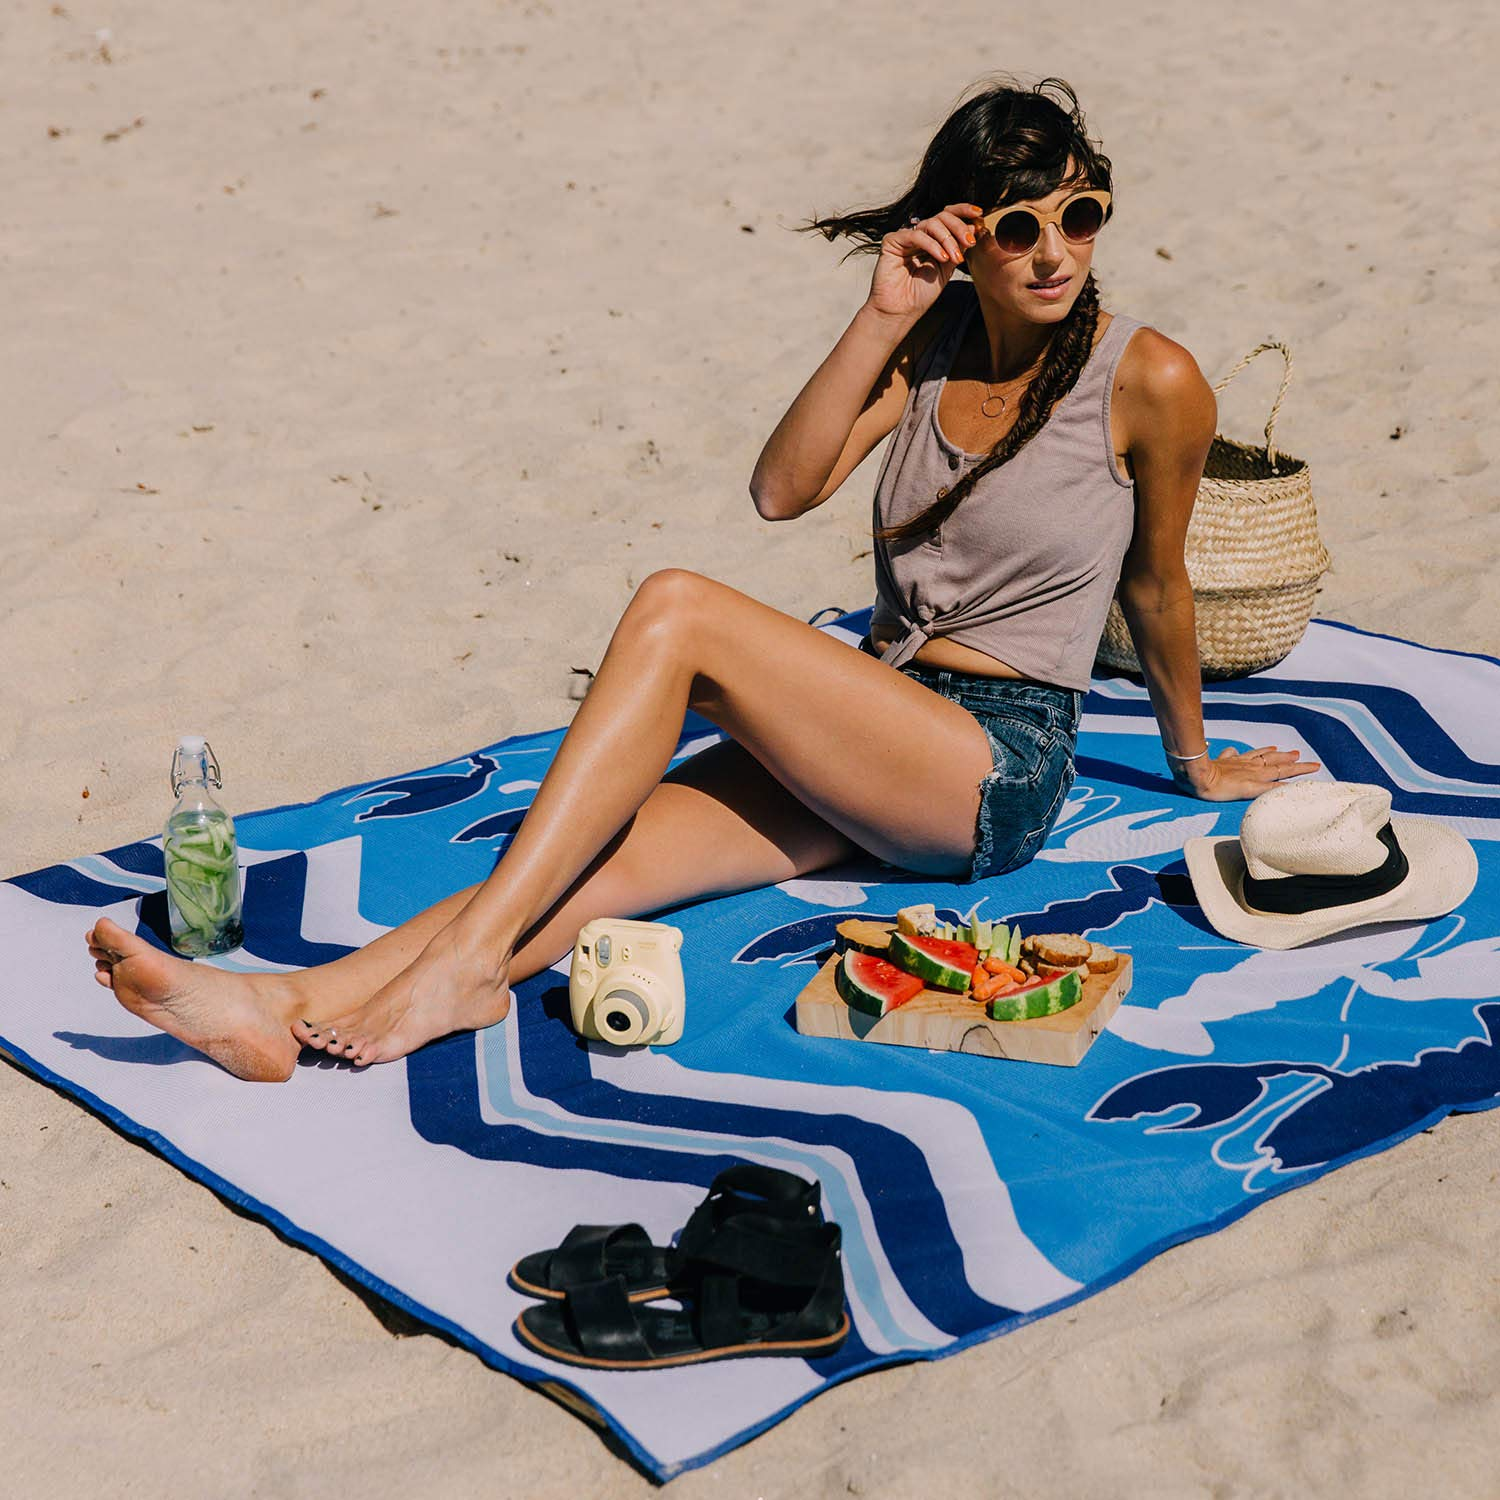 camping water-resistant and great for family picnics and all outdoor adventures. Patented Sand-Free Beach Mat thats durable CGear Sandlite